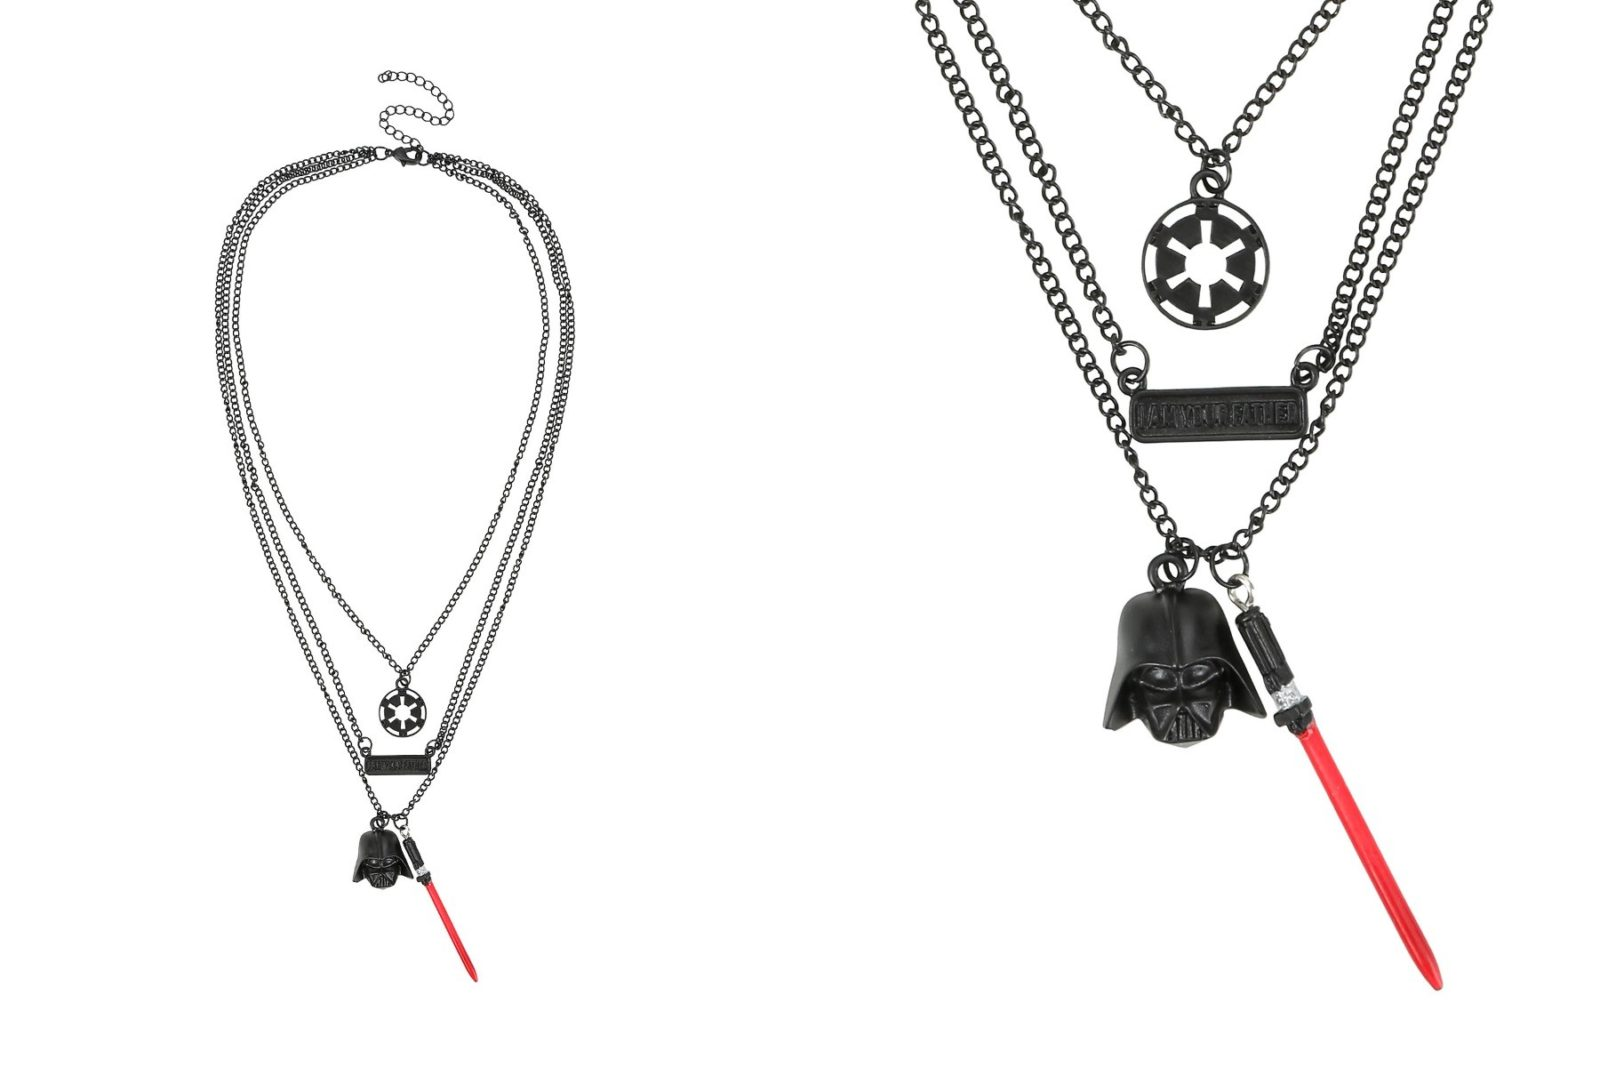 Darth Vader layered necklace at Hot Topic